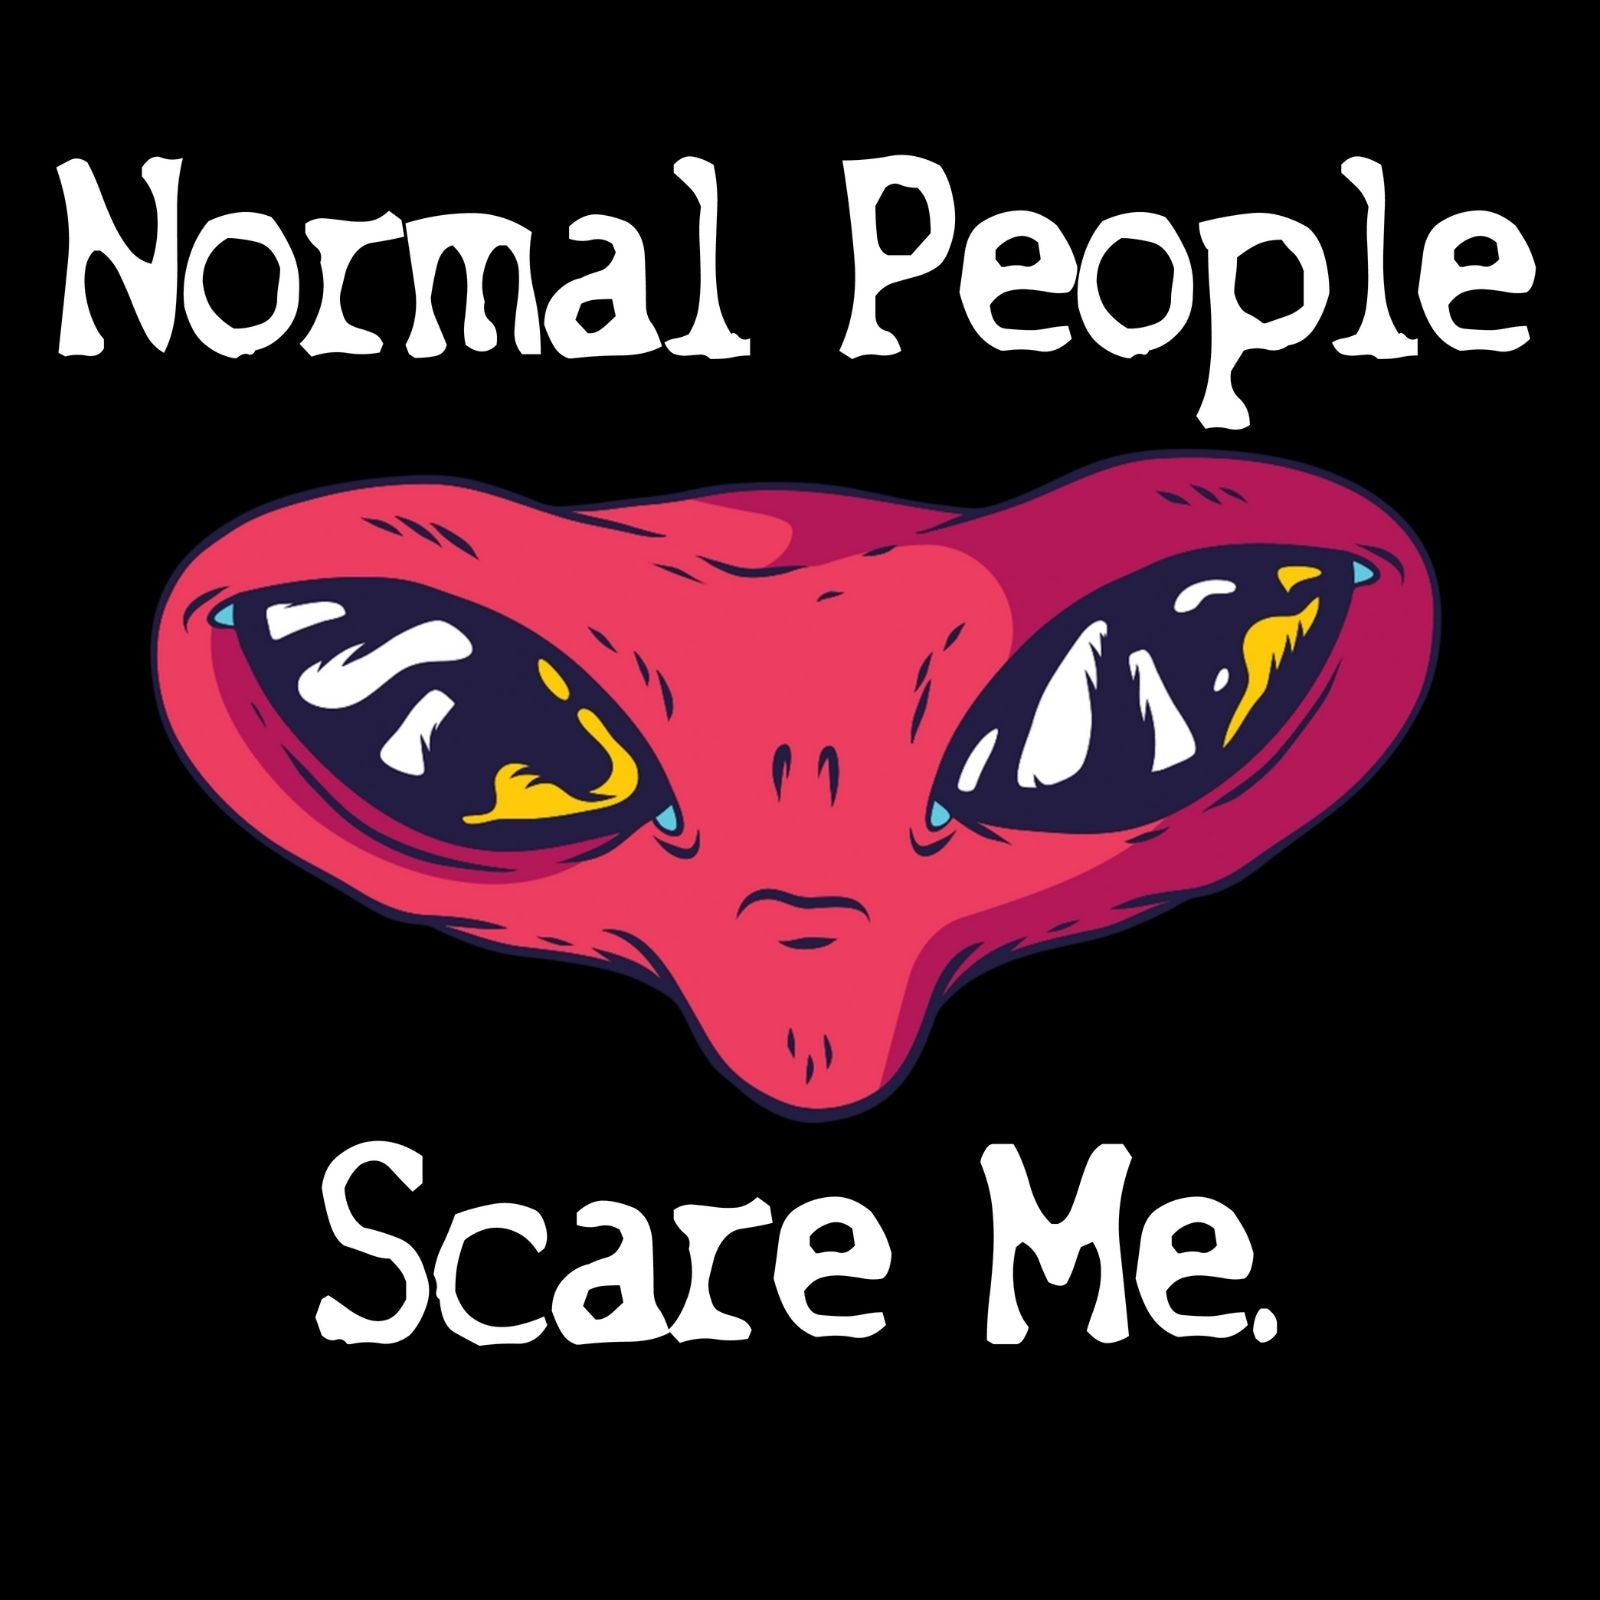 Normal People Scare Me - Bastard Graphics